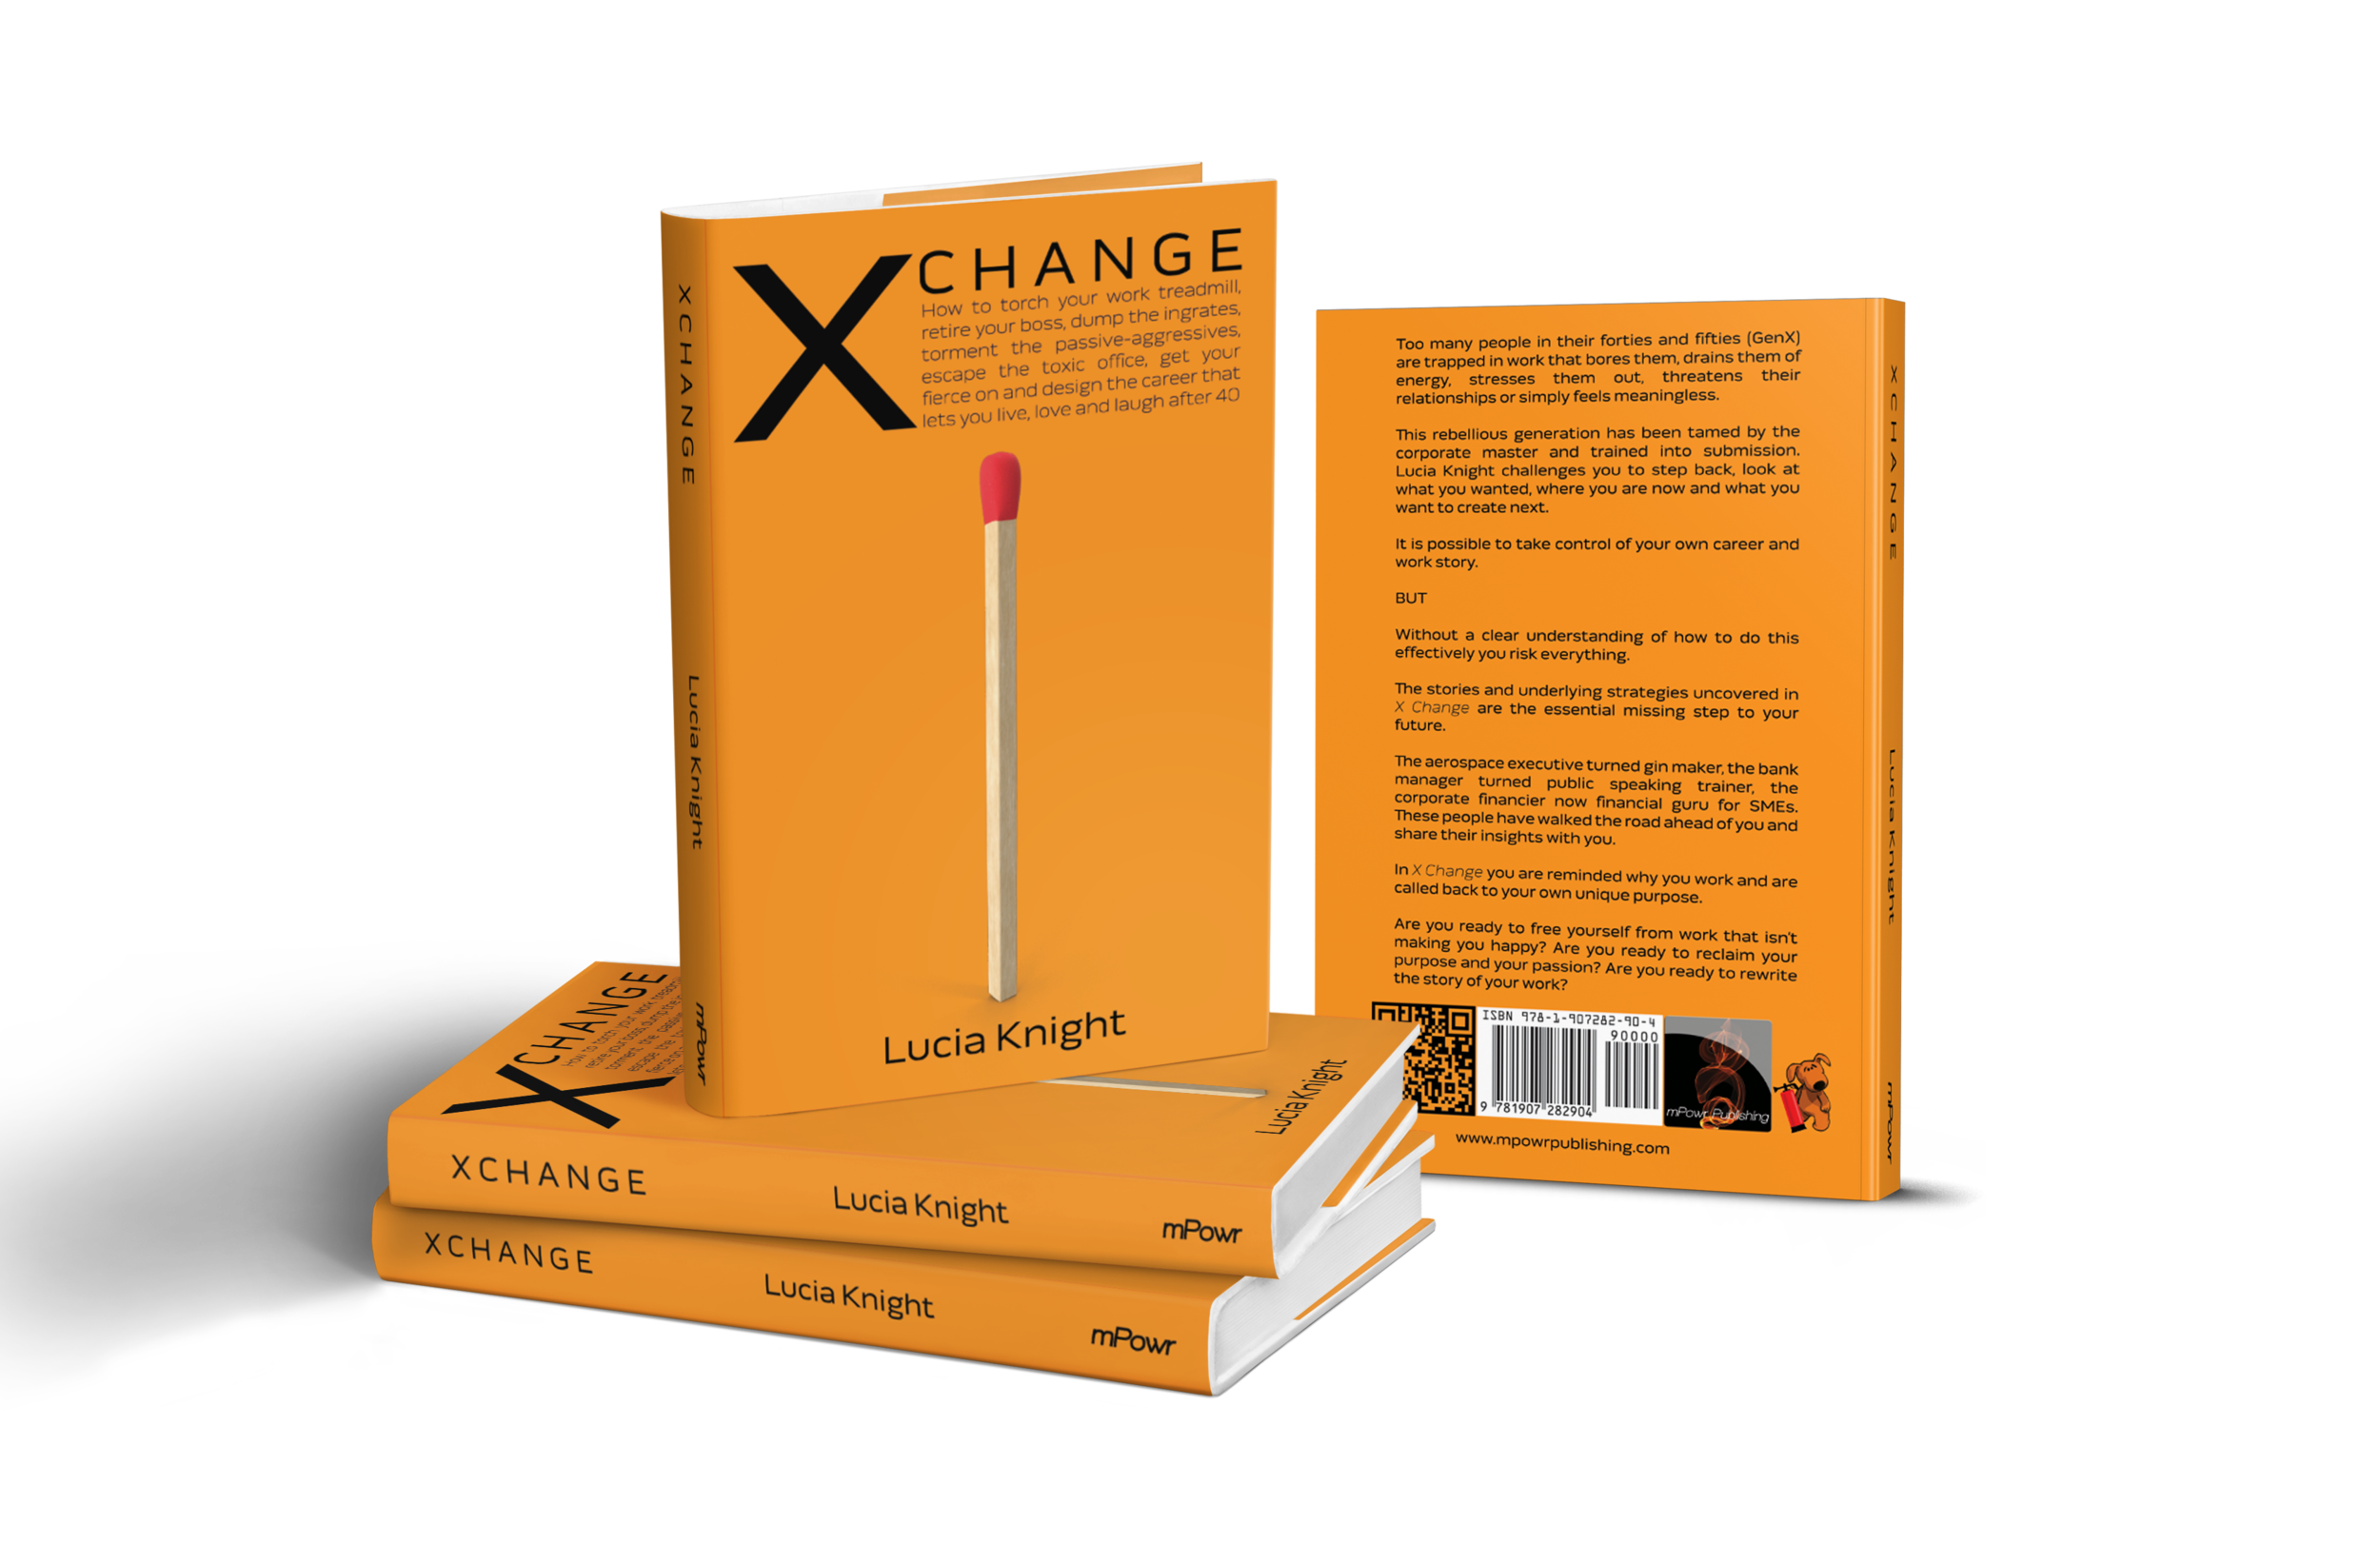 X Change: How to torch your work treadmill. The secrets behind the stories of 20 individuals who changed career in their 40s, 50s or 60s and describe themselves as happier.